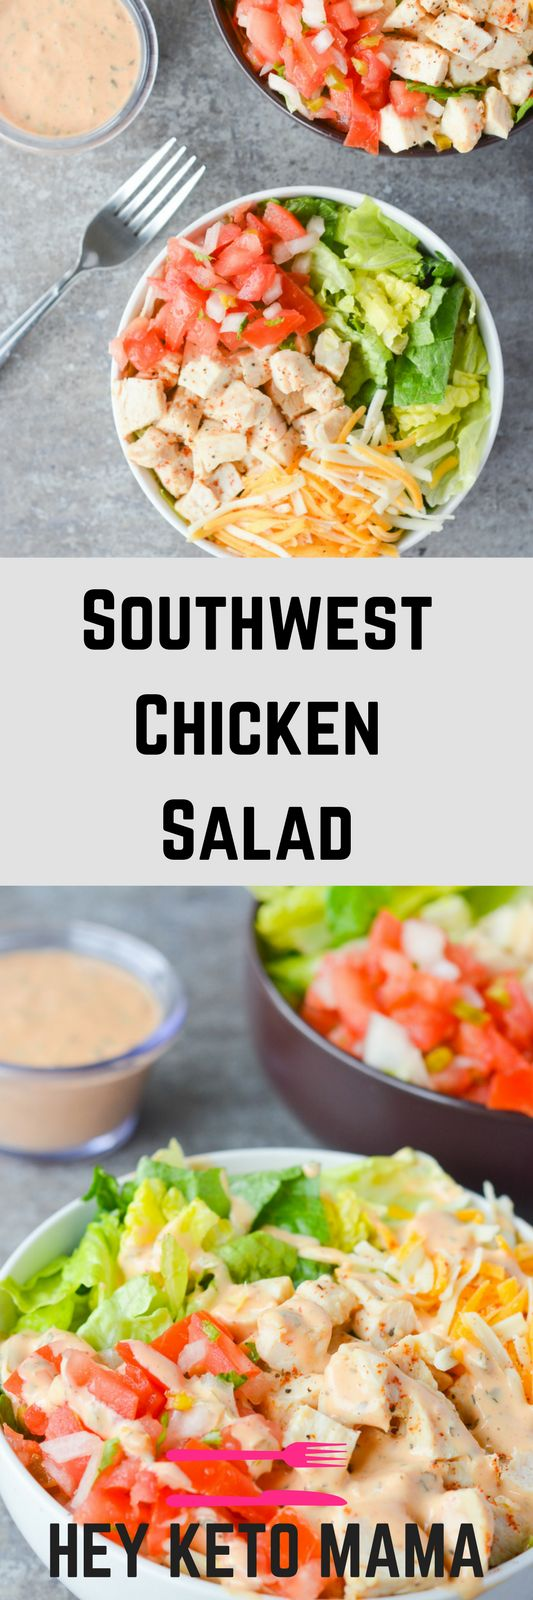 The Southwest Chicken Salad is one of my all time favorites. It's crisp, refreshing, and has just the right amount of kick. This dish is PERFECT for Spring afternoon.   heyketomama.com